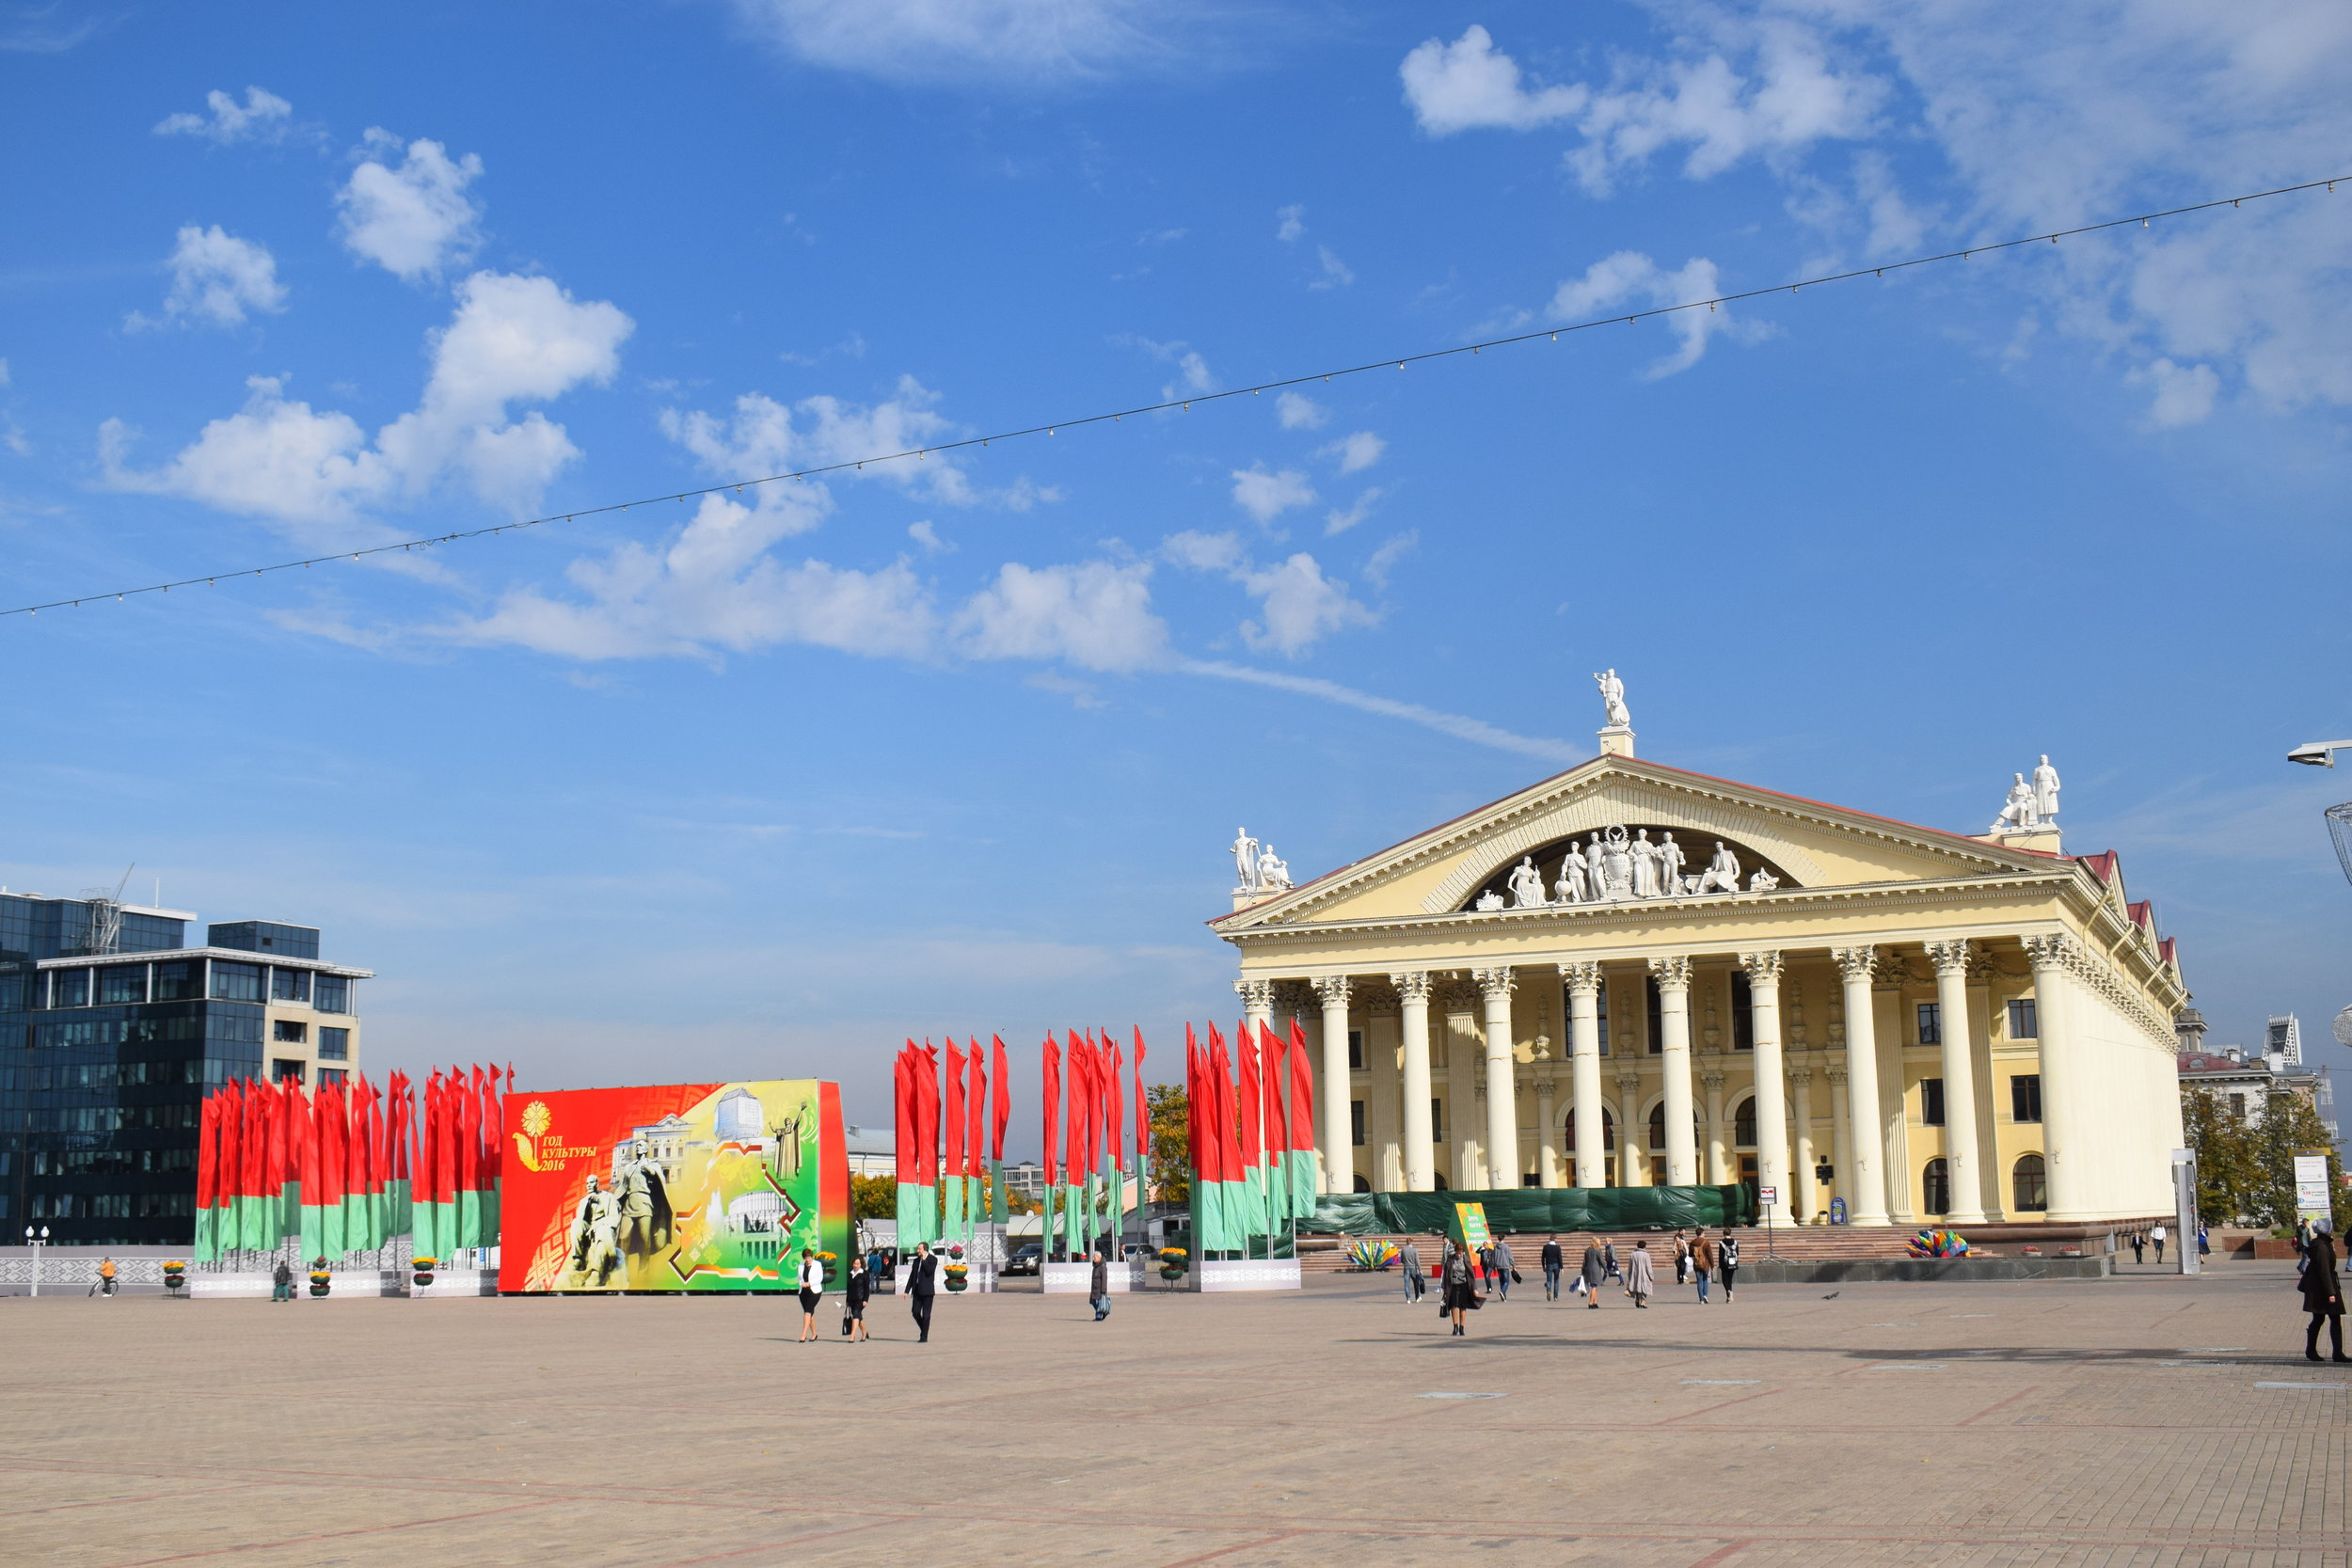 Minsk's cultural centre with a collection of flags outside in the colours of the Belarus flag.